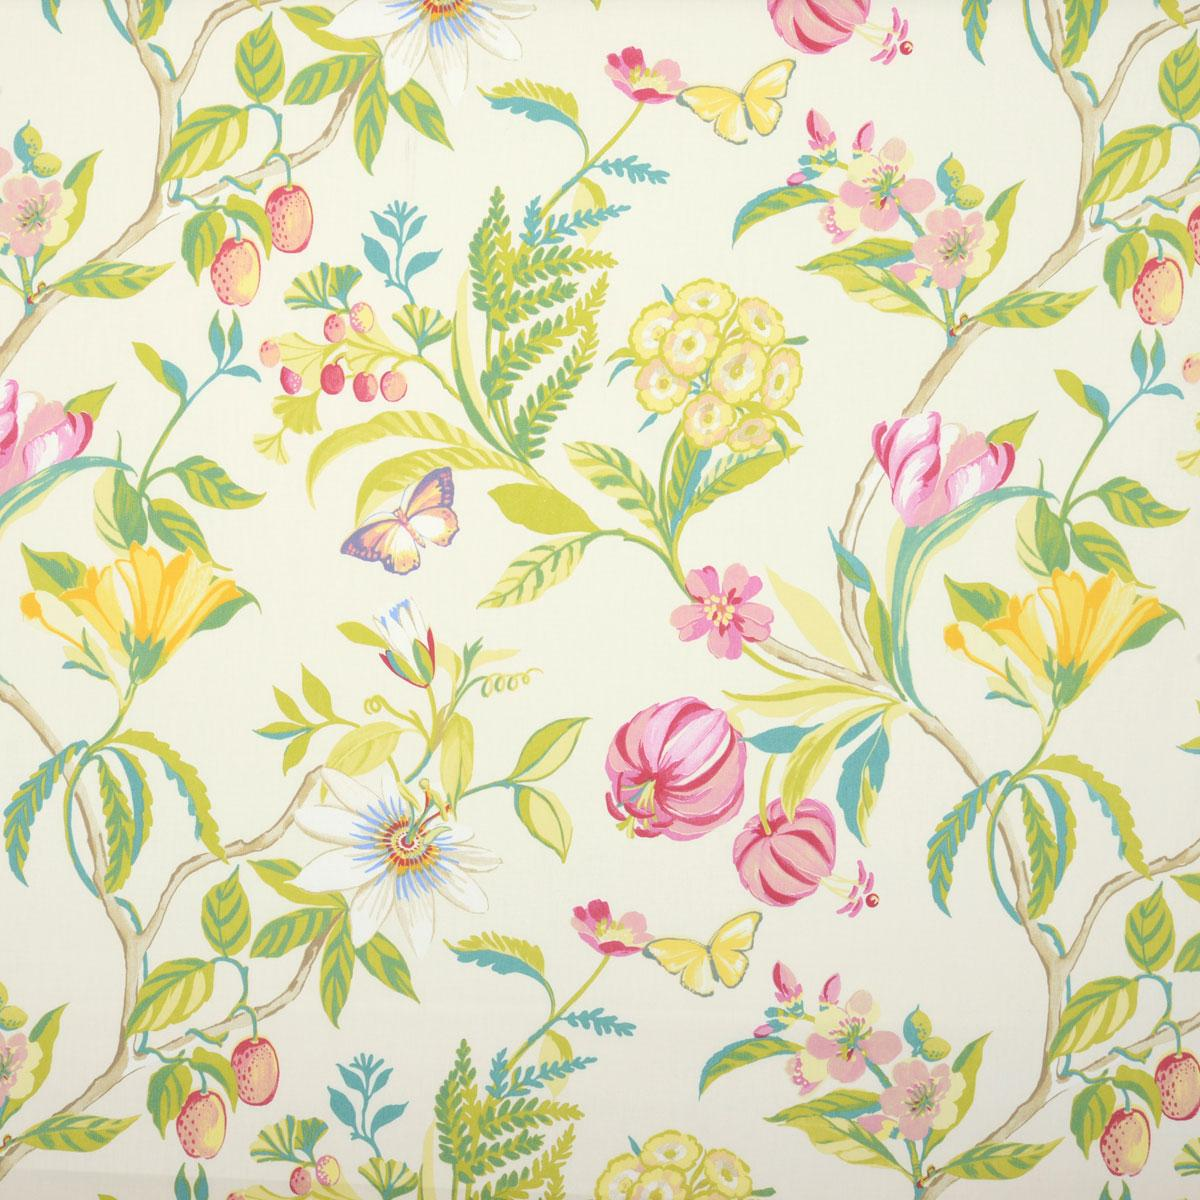 Botanica Curtain Fabric In Peony | Free UK Delivery | Terrys Fabrics